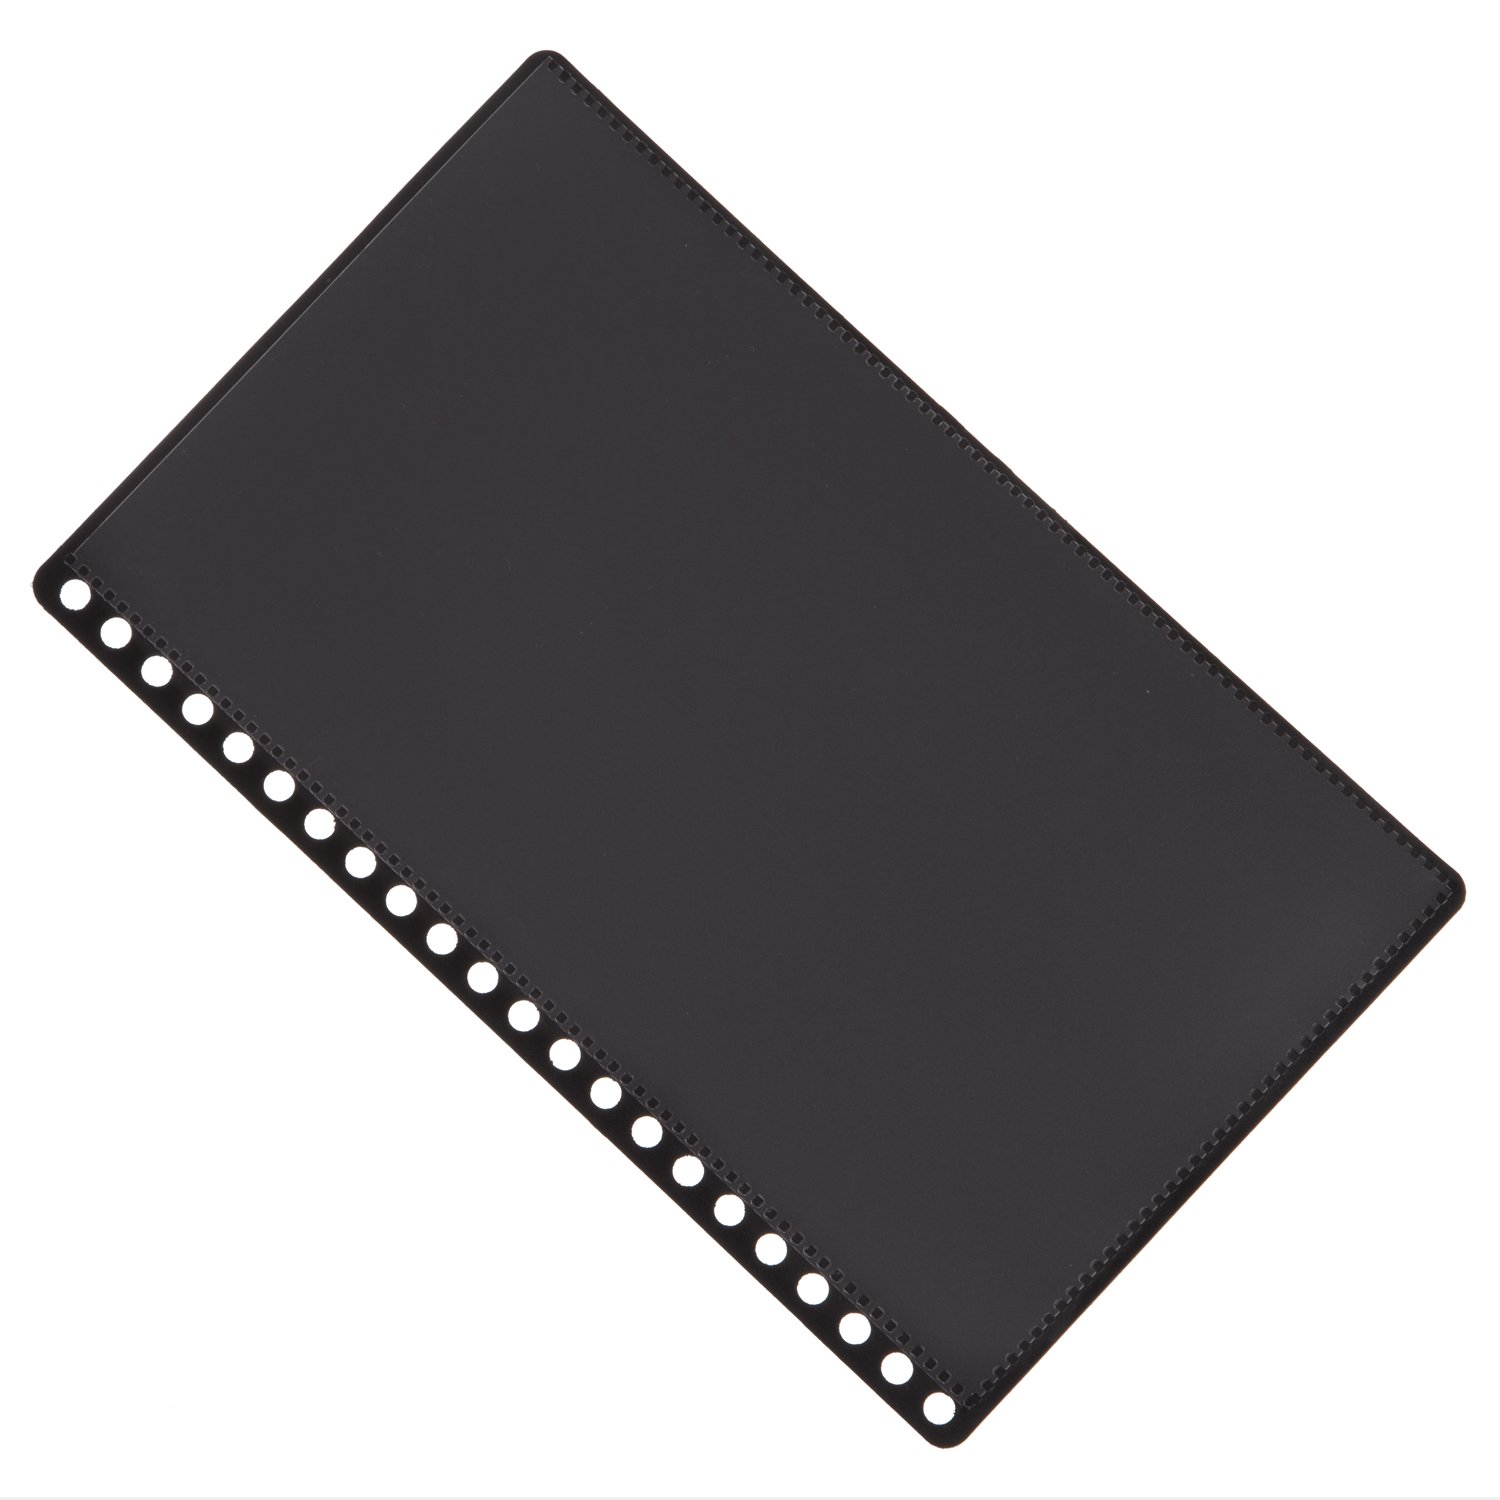 22 Hole Aerobind QRH Cover - 6.83 Inch Wide Black Rigid Pilot Checklist Cover With Attached Pockets - 100 Per Pack